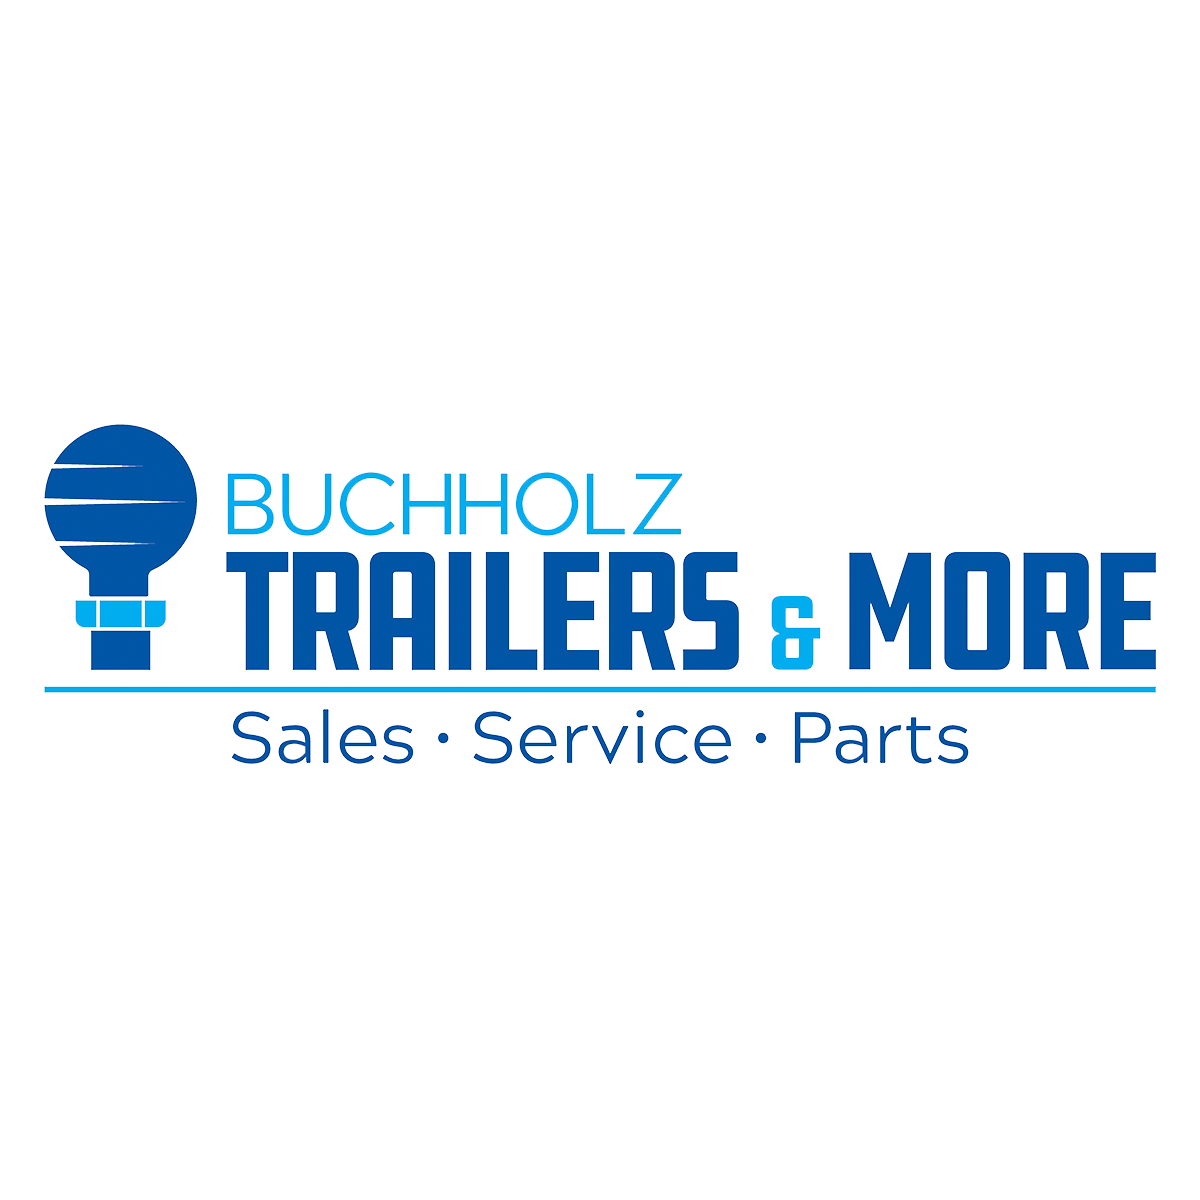 Buchholz Trailers & More image 2